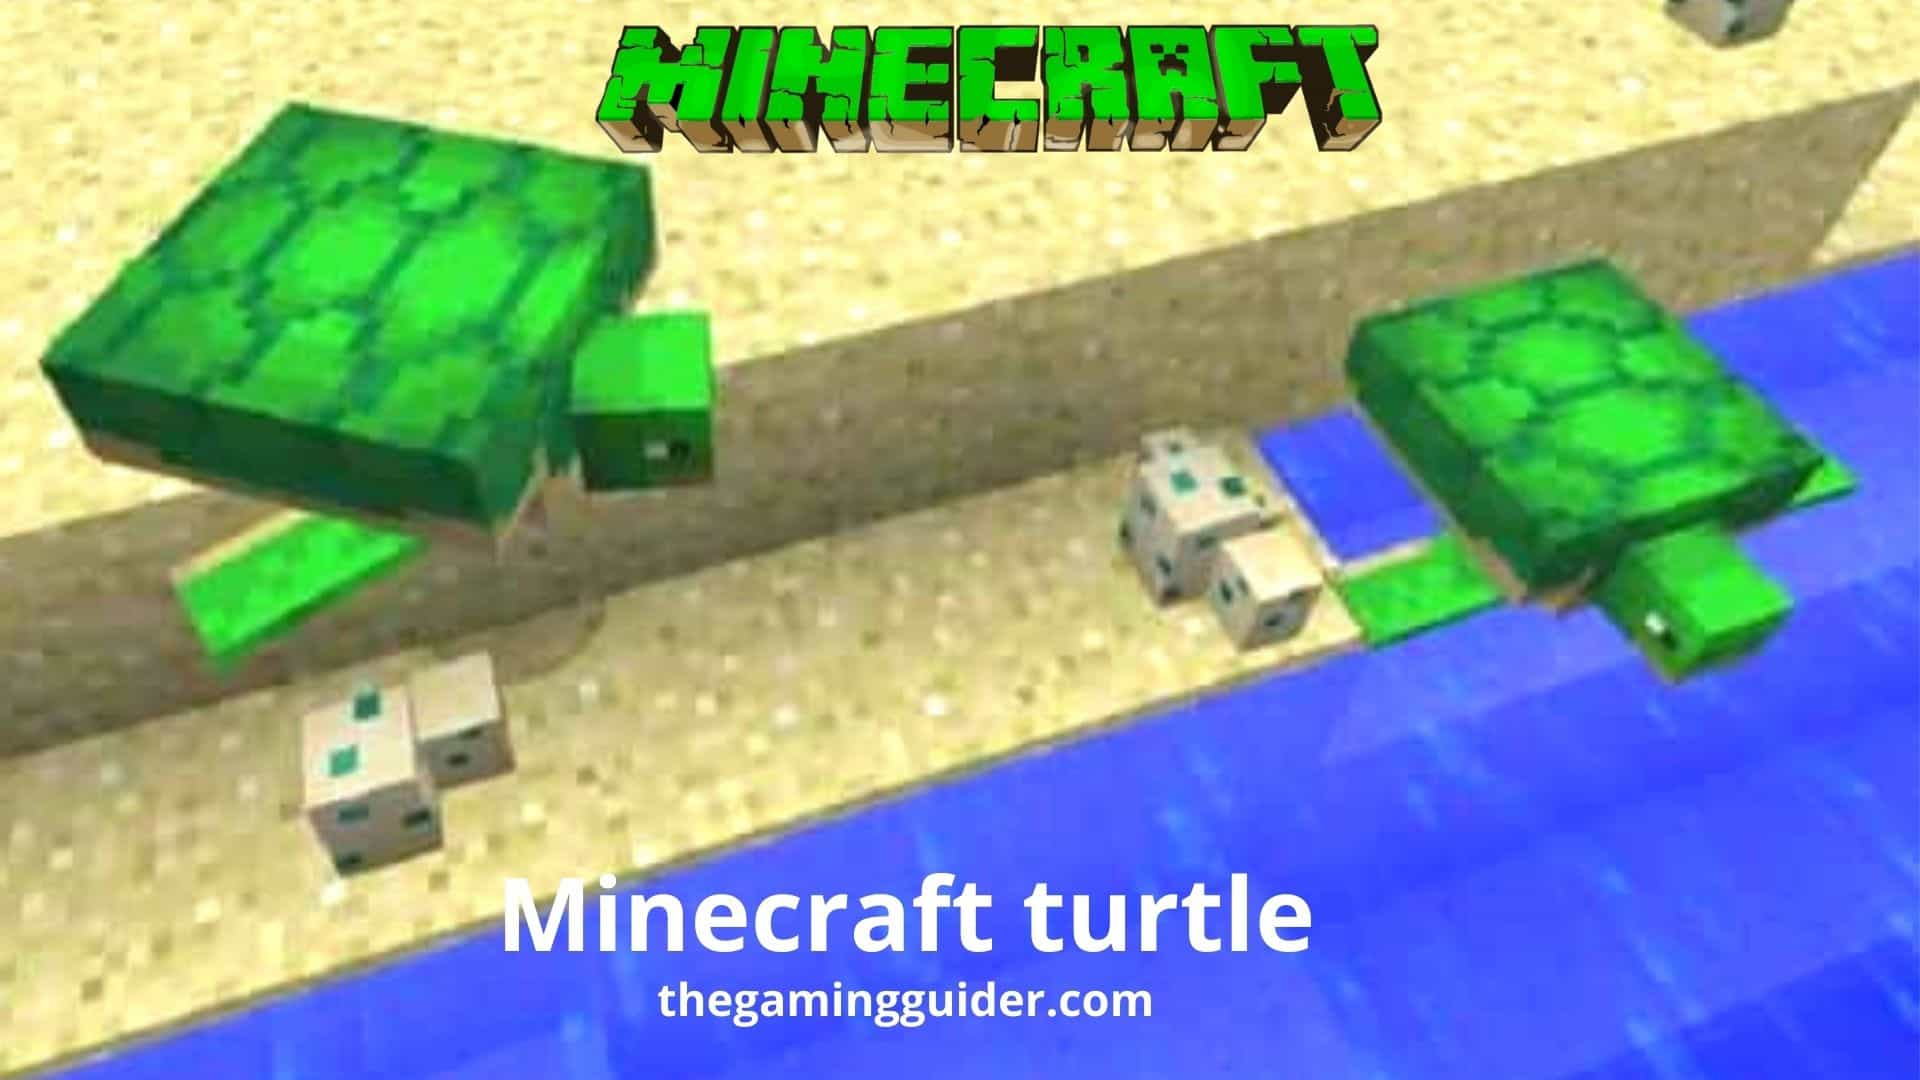 Minecraft turtle- the gaming guider